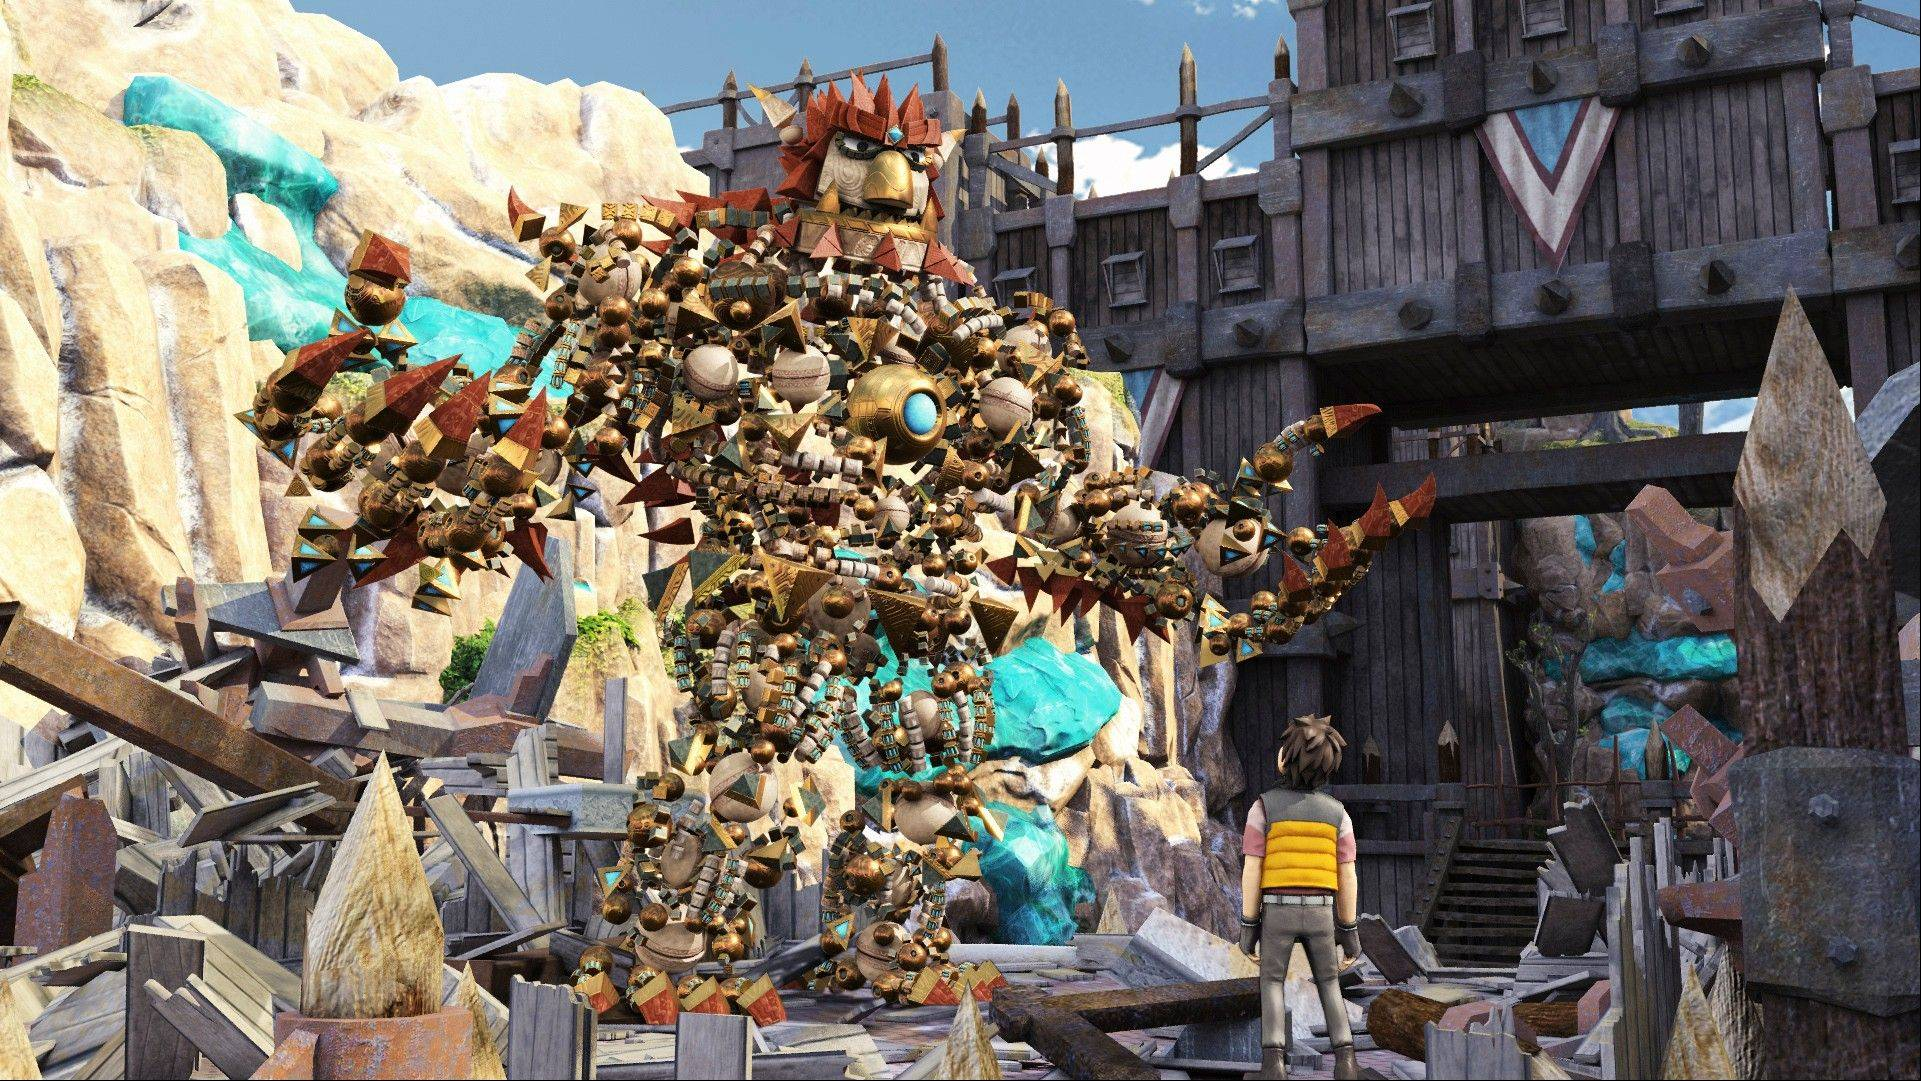 """Knack"" marks a departure for Sony games' image, more famous for battle and adult action genres."